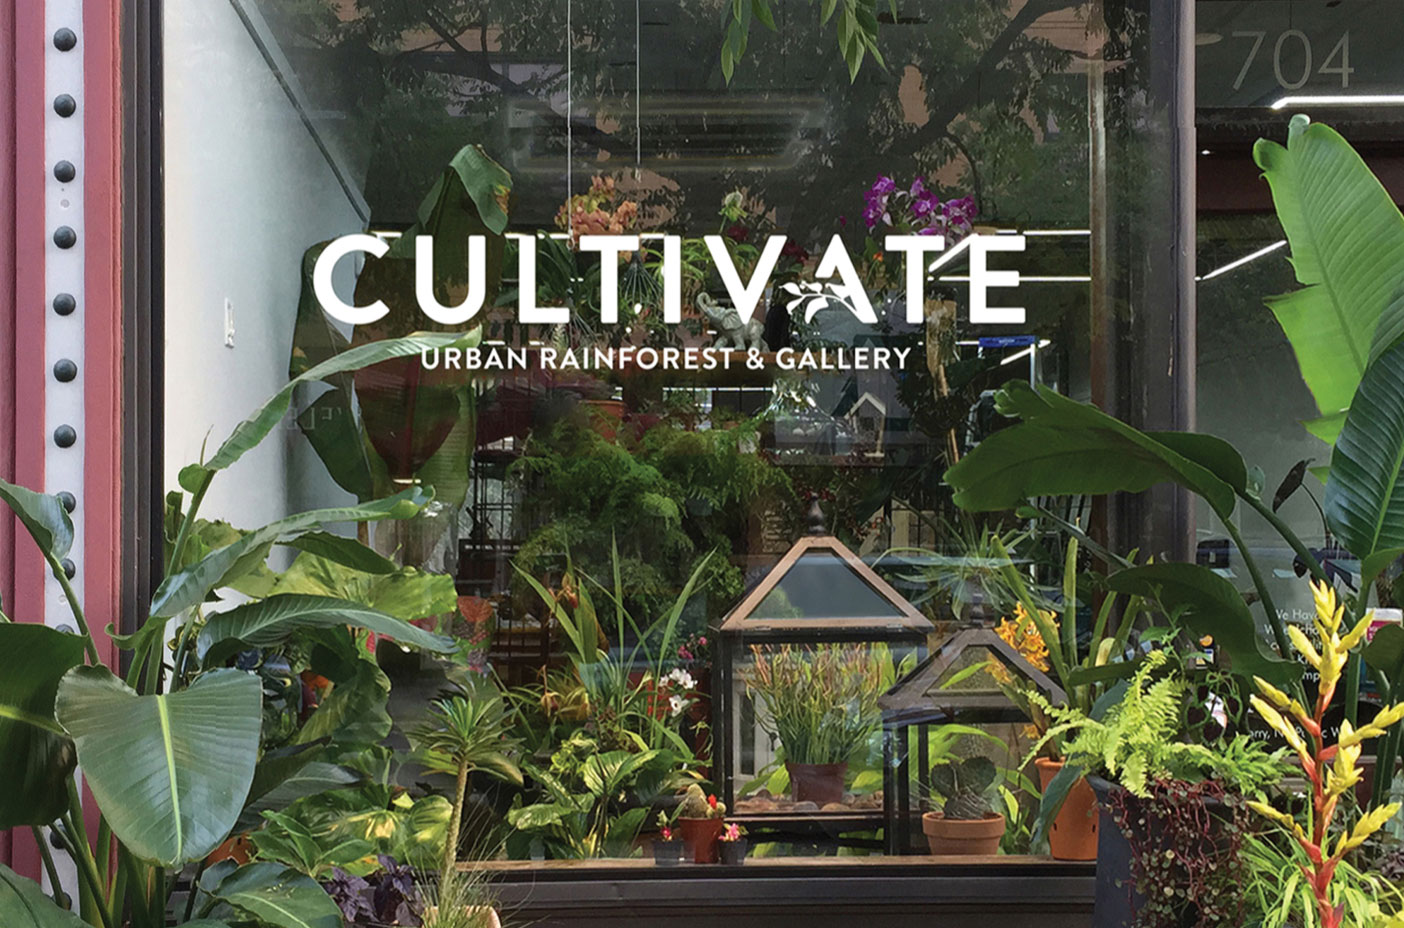 Photo of the Cultivate storefront